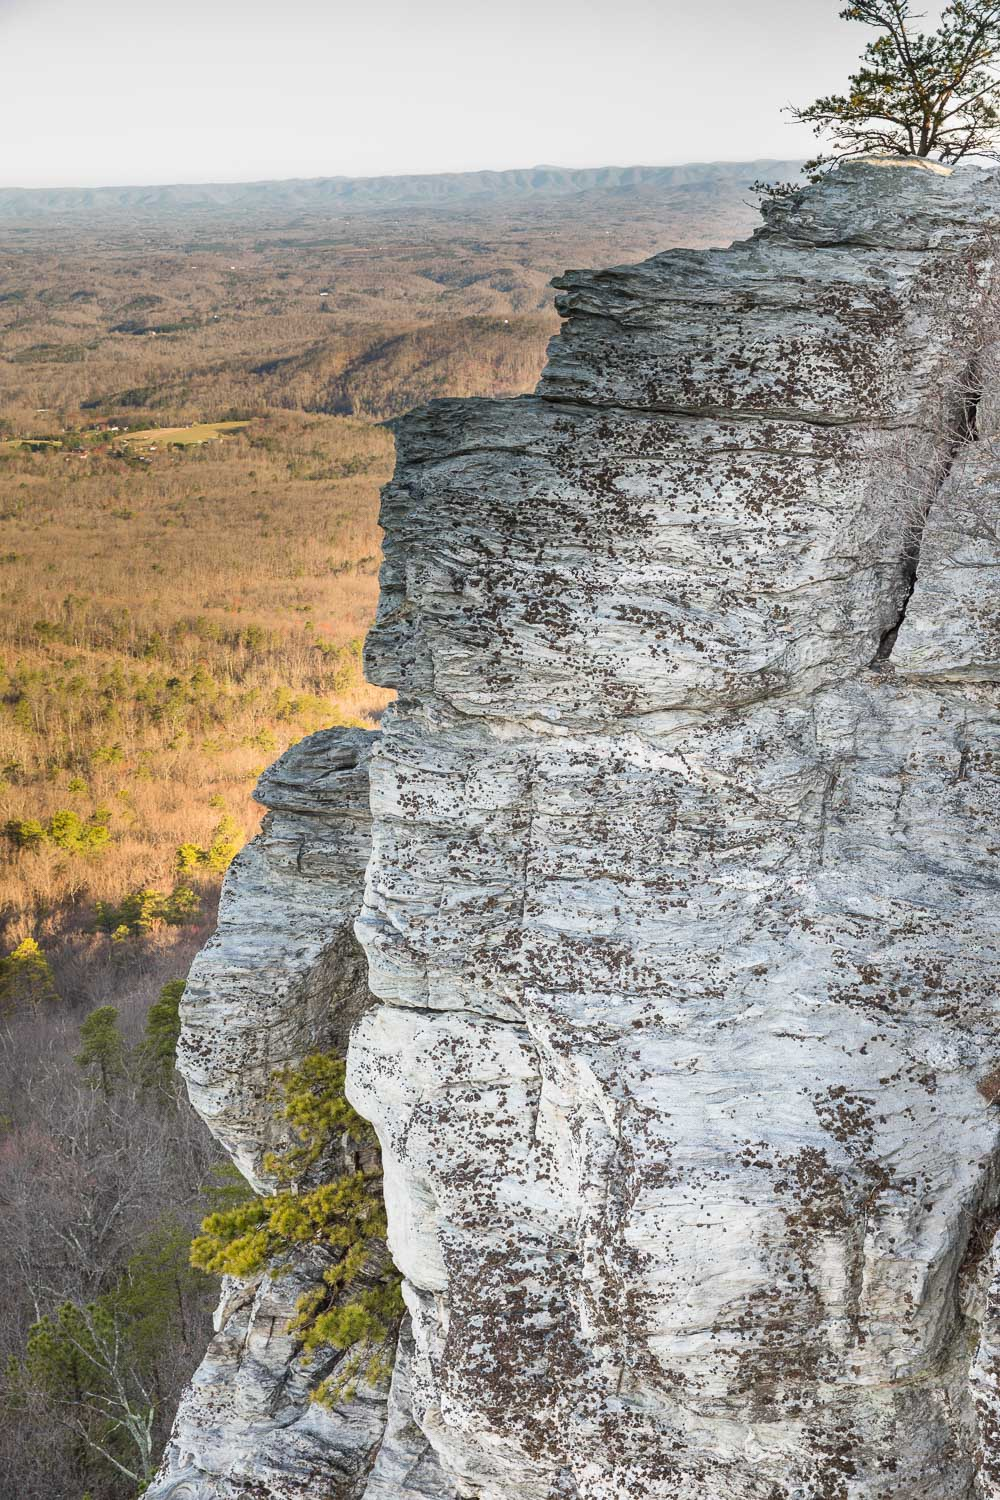 One of the iconic cliffs of Hanging Rock. (No, you're not actually supposed to climb on Hanging Rock summit though; you hike to the top of this rock cliff.)